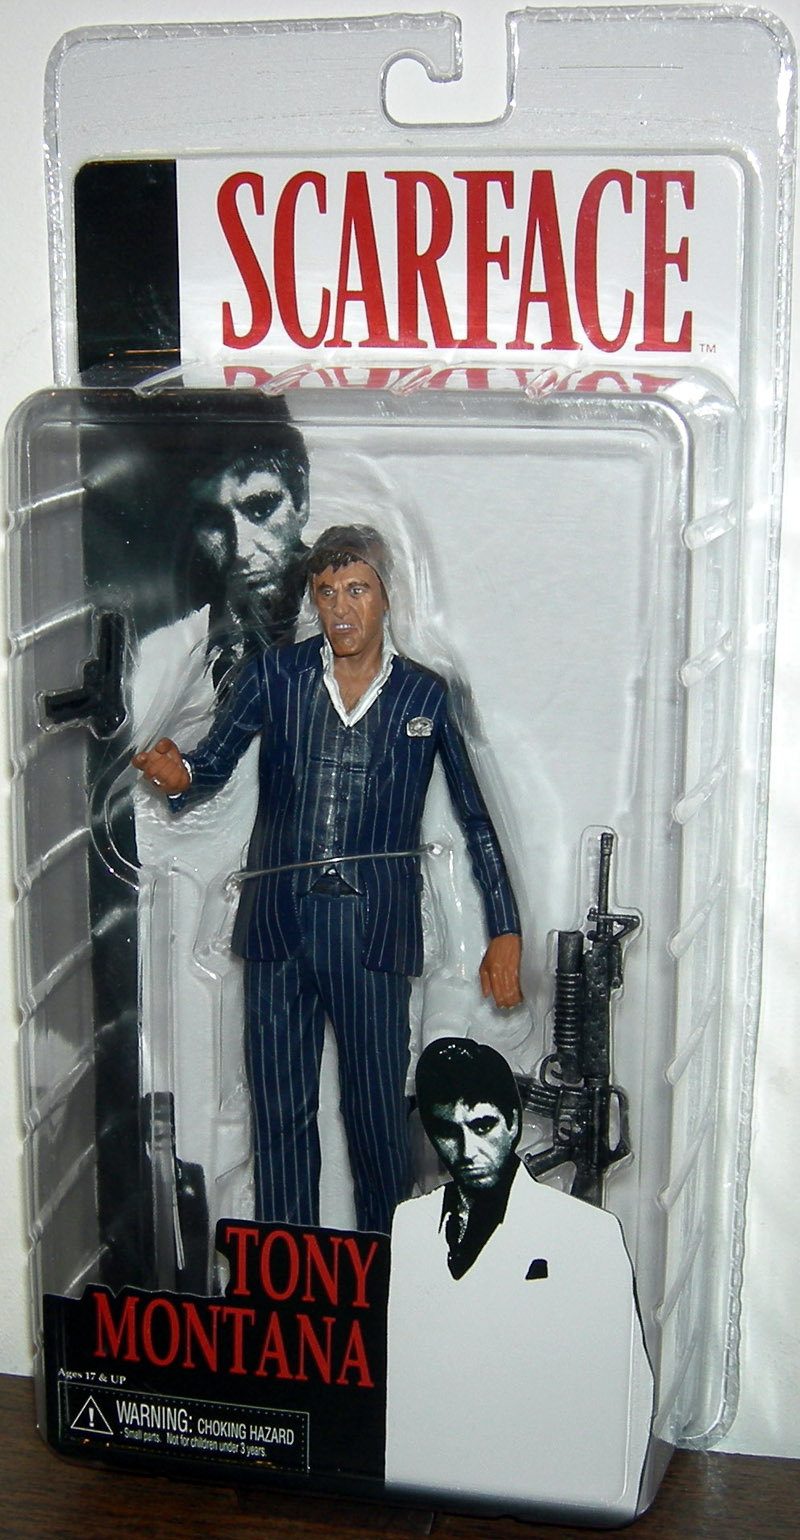 Tony Montana (Scarface, blue suit)